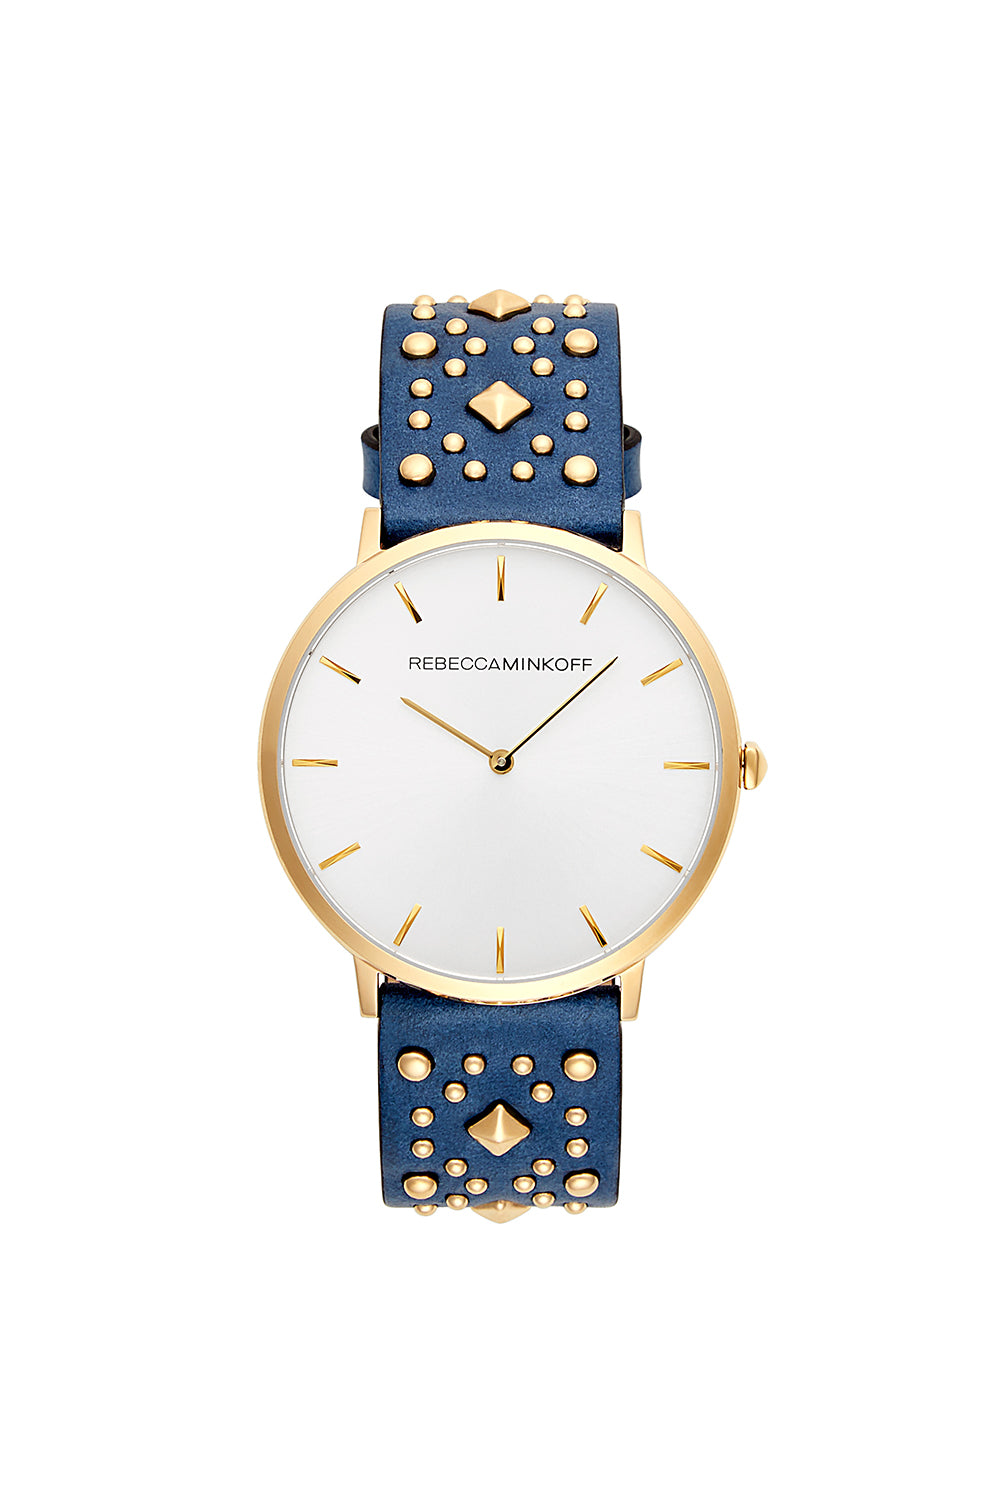 Rebecca-Minkoff Major Gold Tone Blue Studded Strap Watch, 40MM